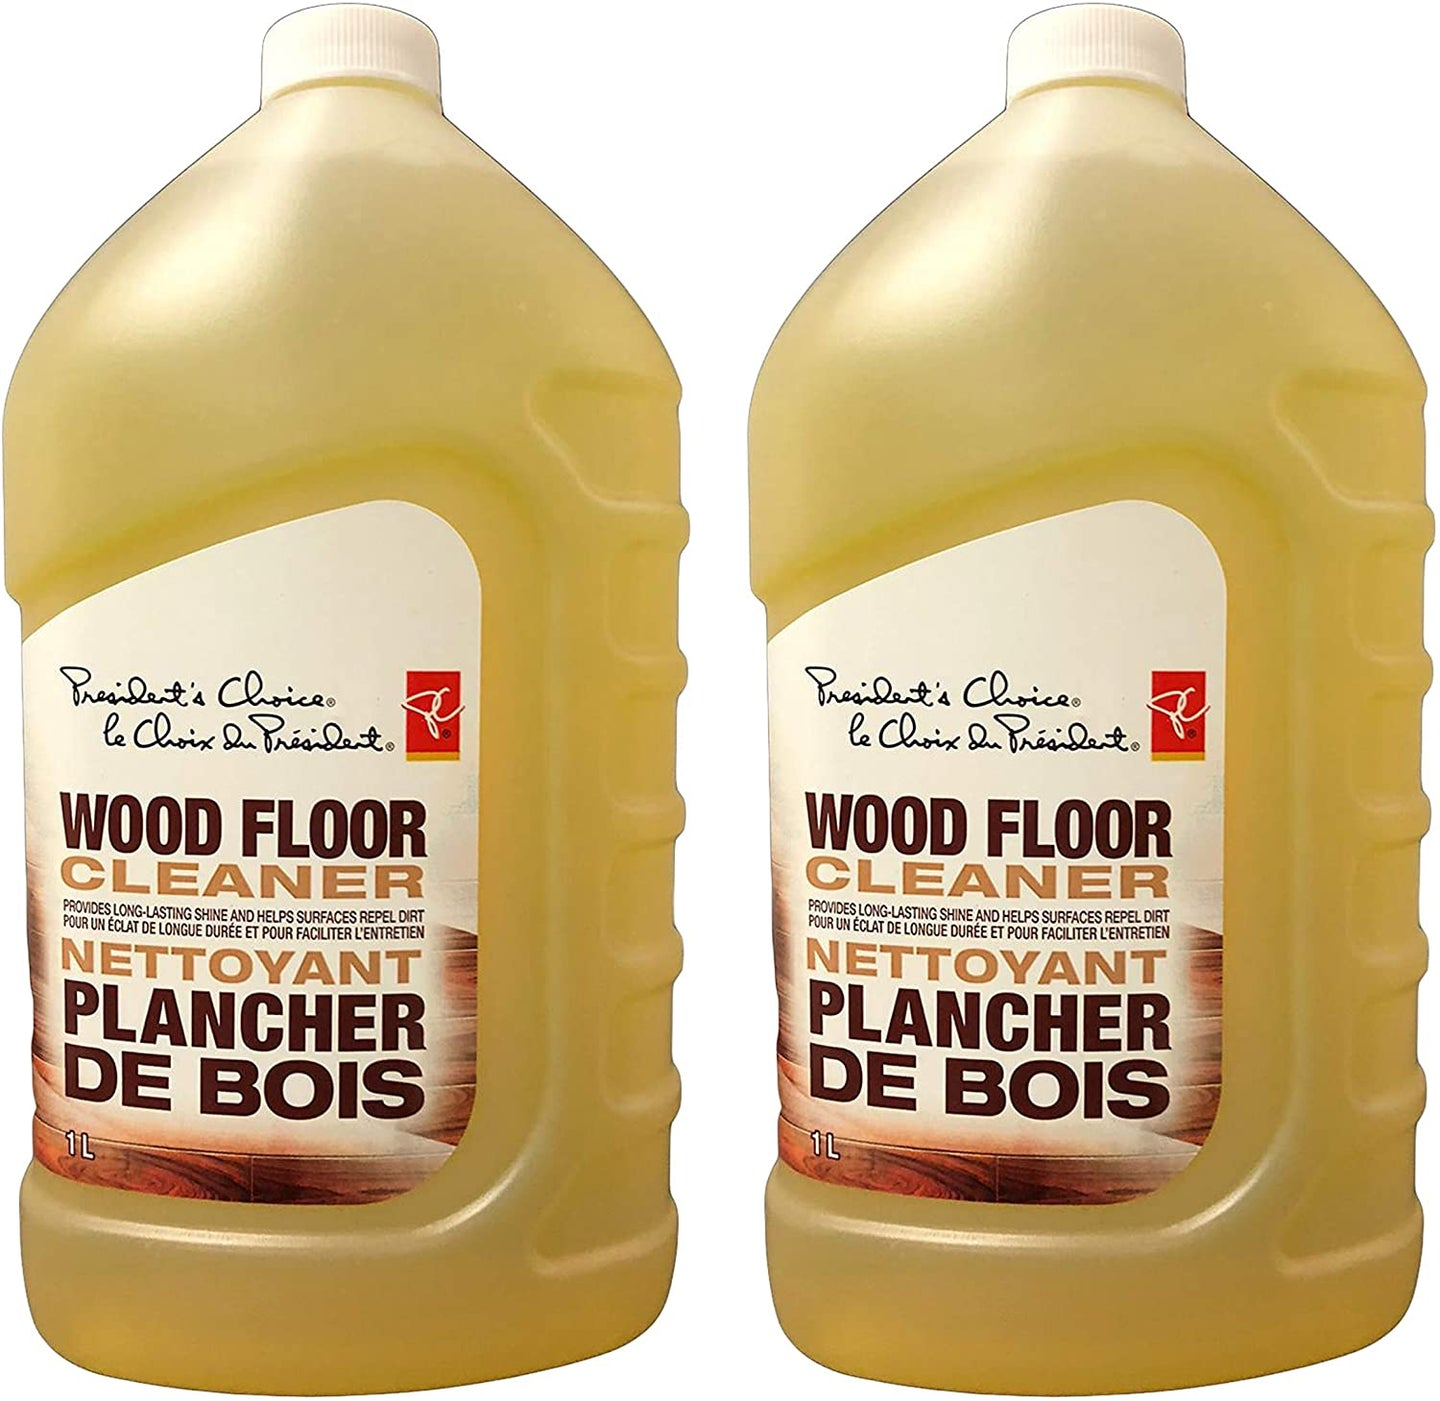 Presidents Choice Wood Floor Cleaner, 1 Liter (Pack of 2)